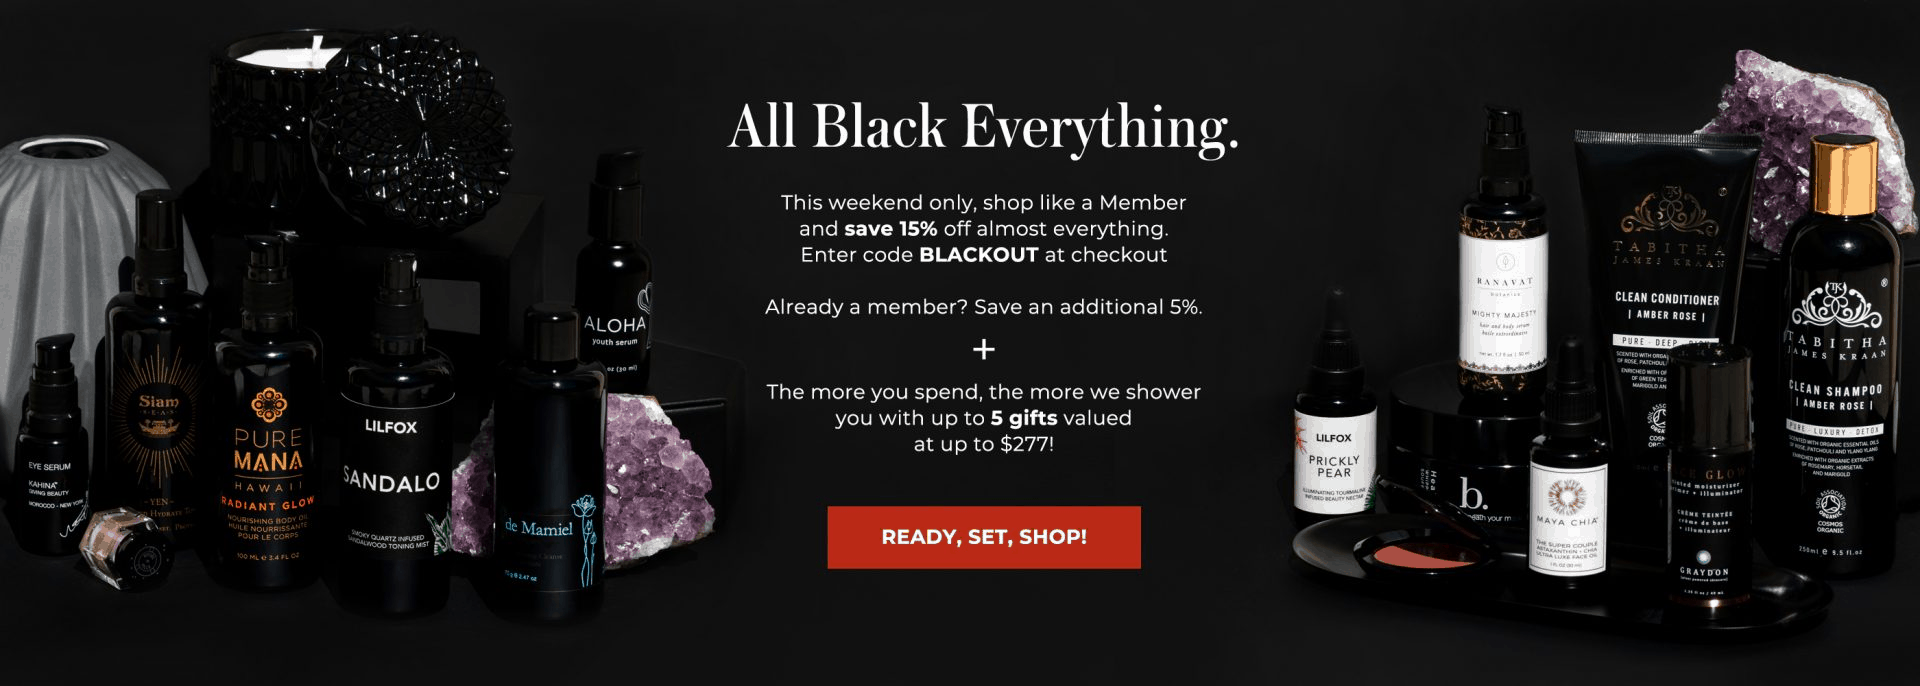 Beauty Heroes MEMBERS ONLY Black Friday Deal: Save 20% OFF + up to 5 Free Gifts with Purchase!